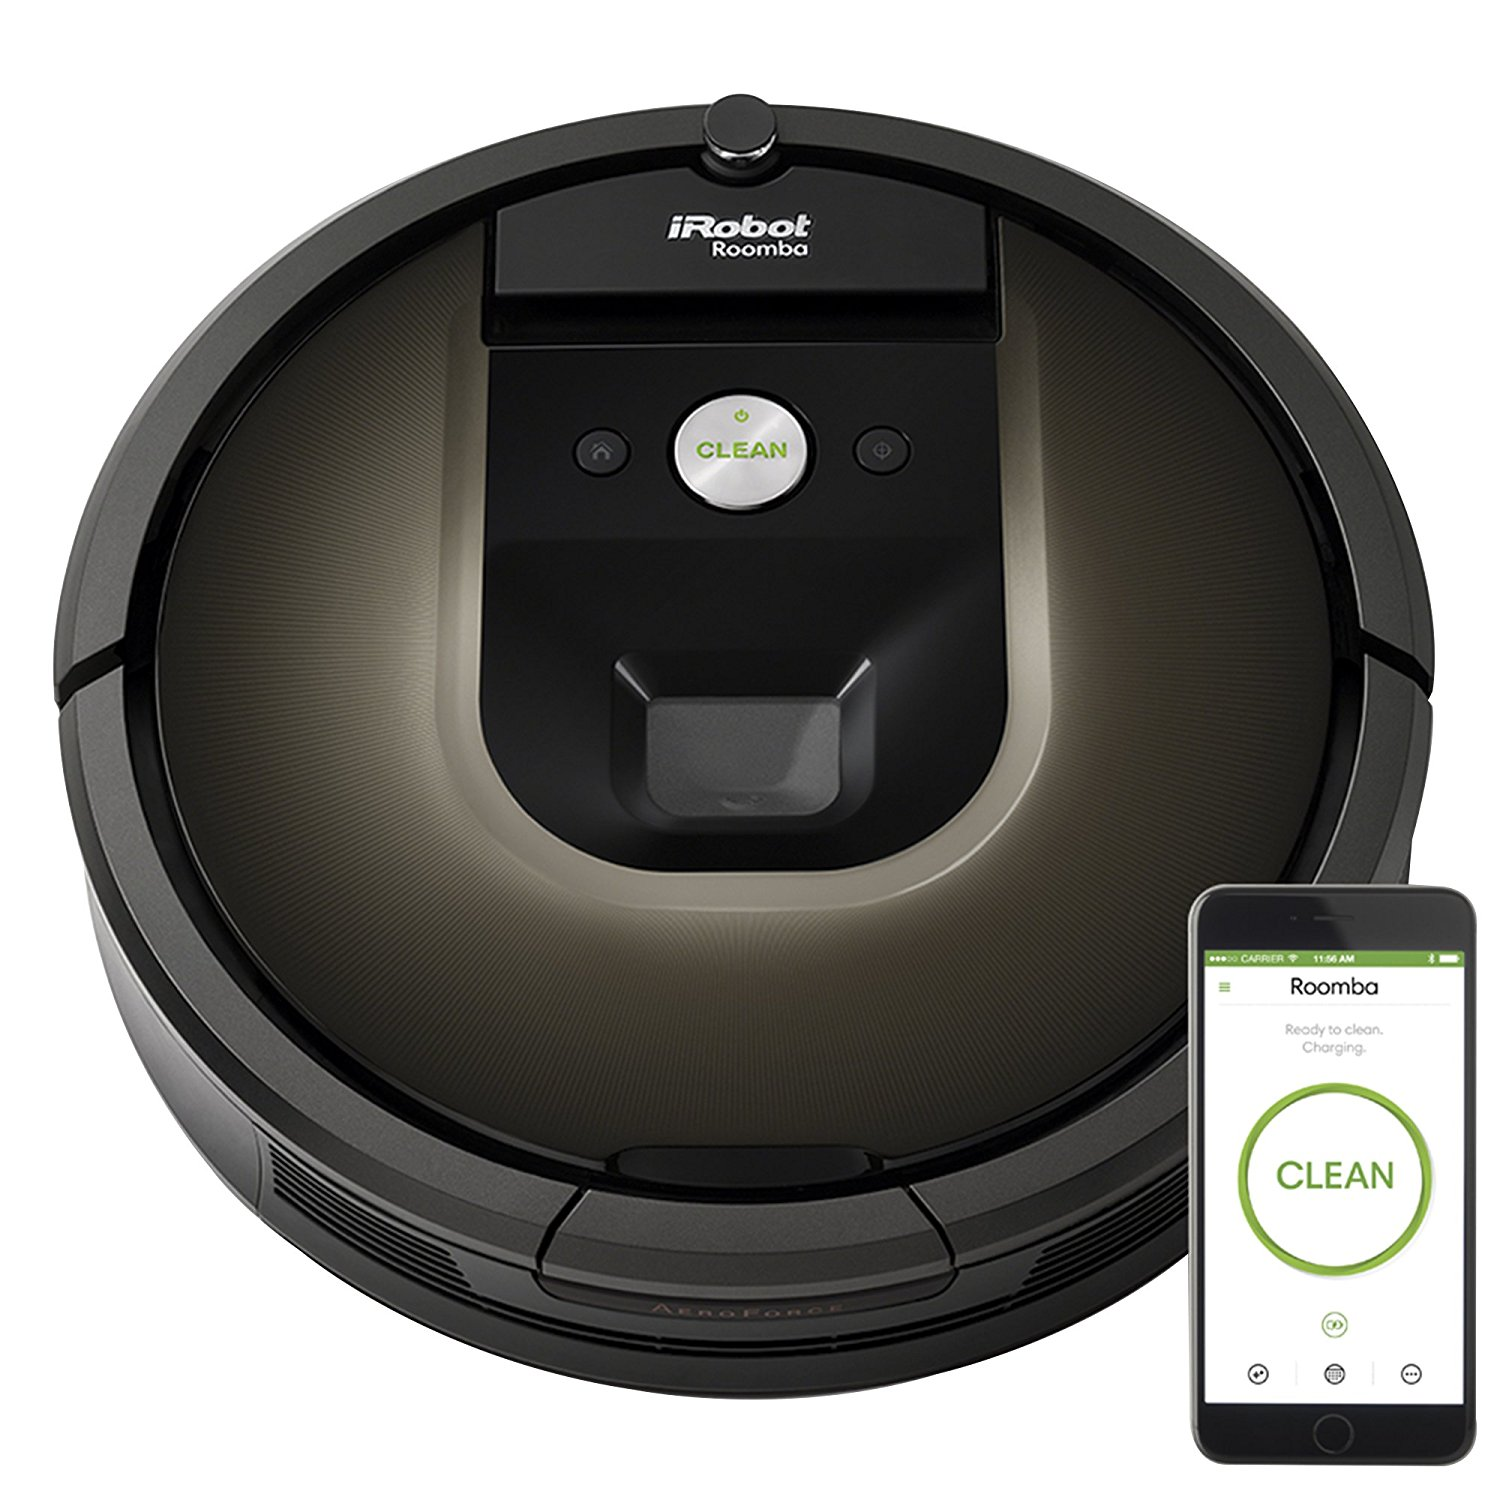 iRobot Roomba 980 Wi-Fi Connected Robotic Vacuum Cleaner